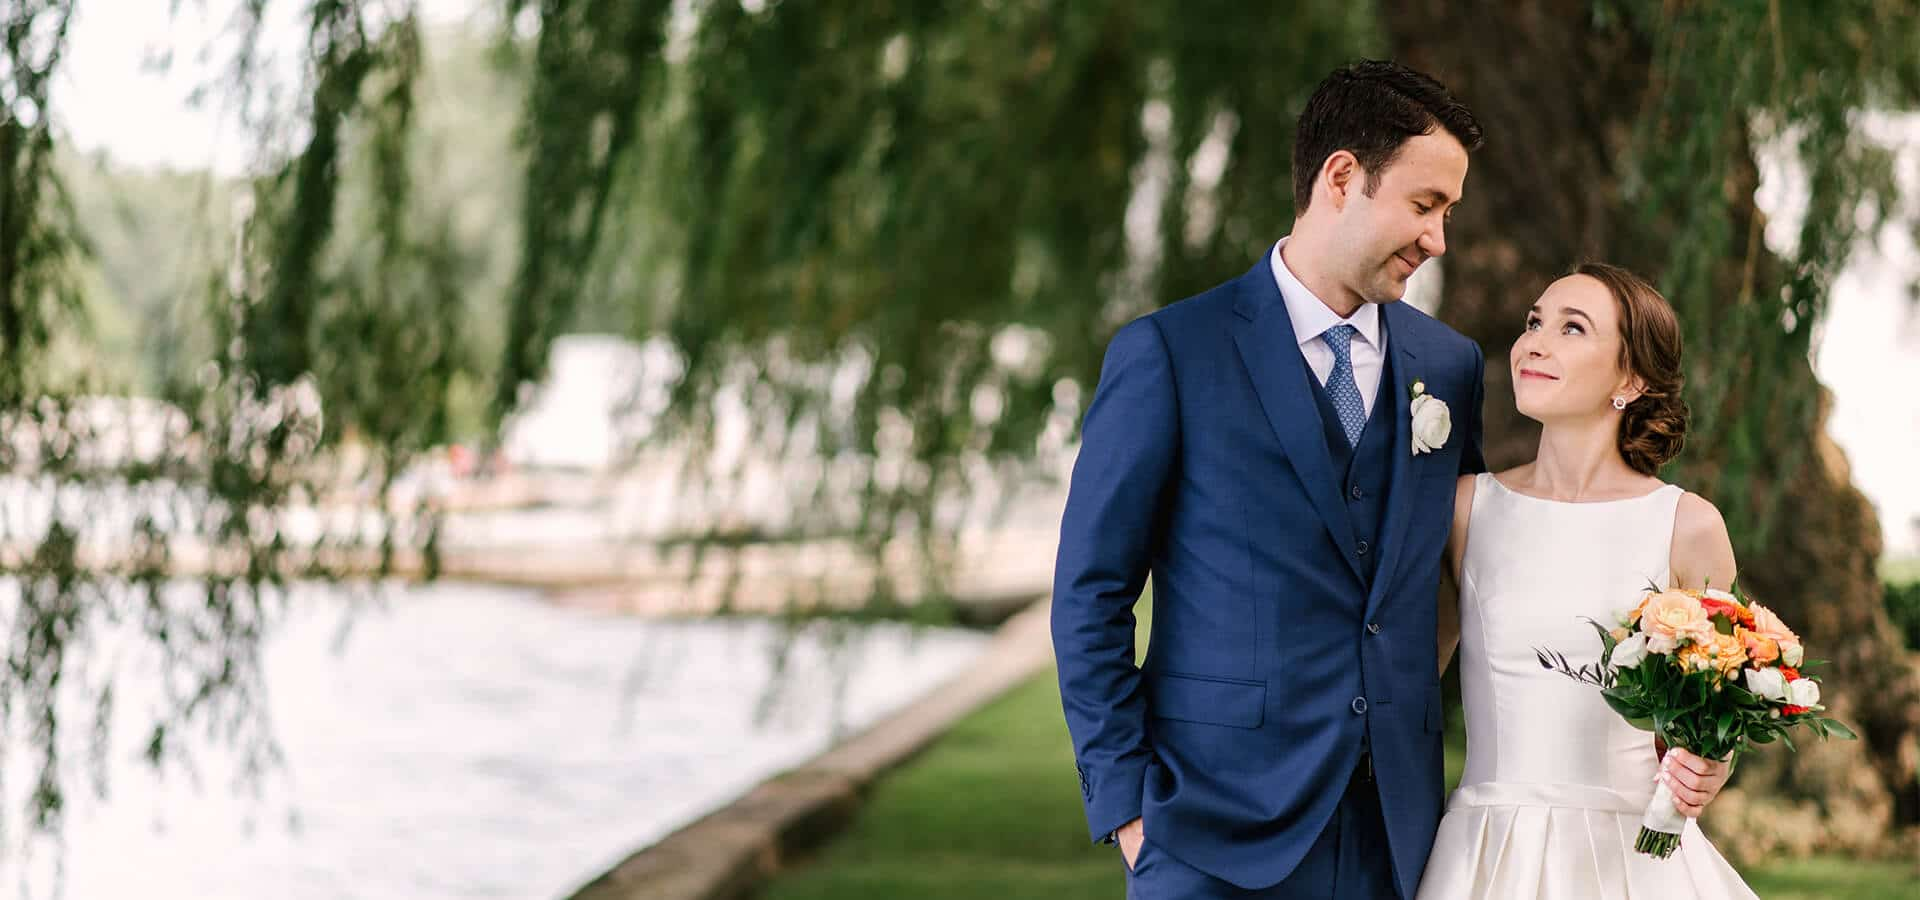 Hero image for Megan and Santiago's Lakeside Wedding at the Royal Canadian Yacht Club